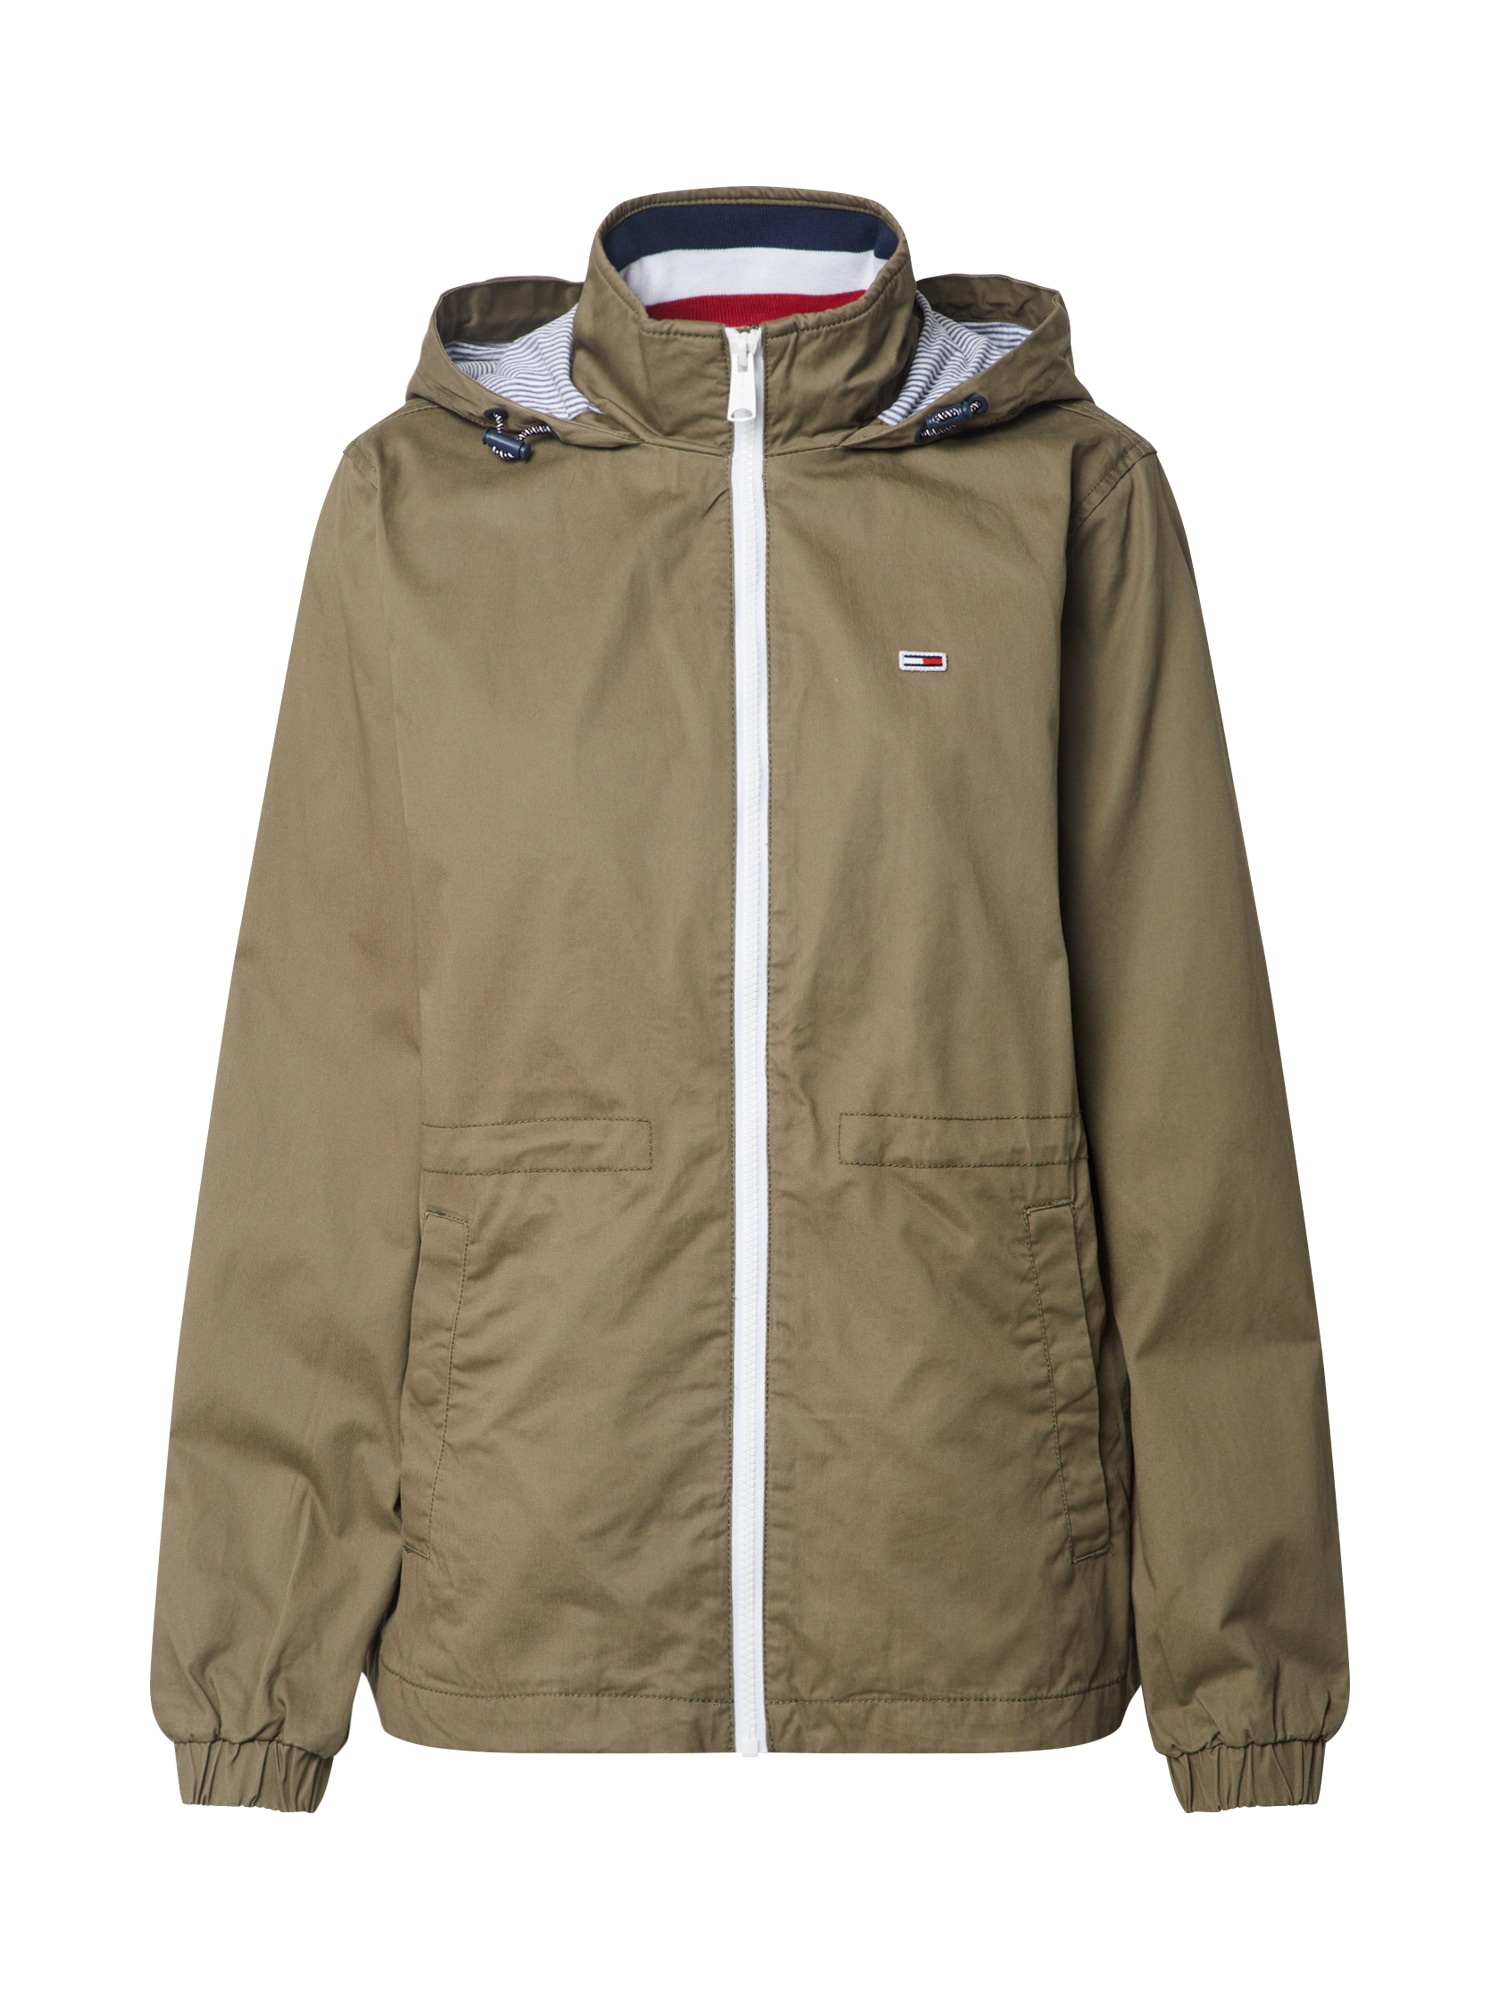 Přechodná bunda TJW HOODED WINDBREAK olivová Tommy Jeans